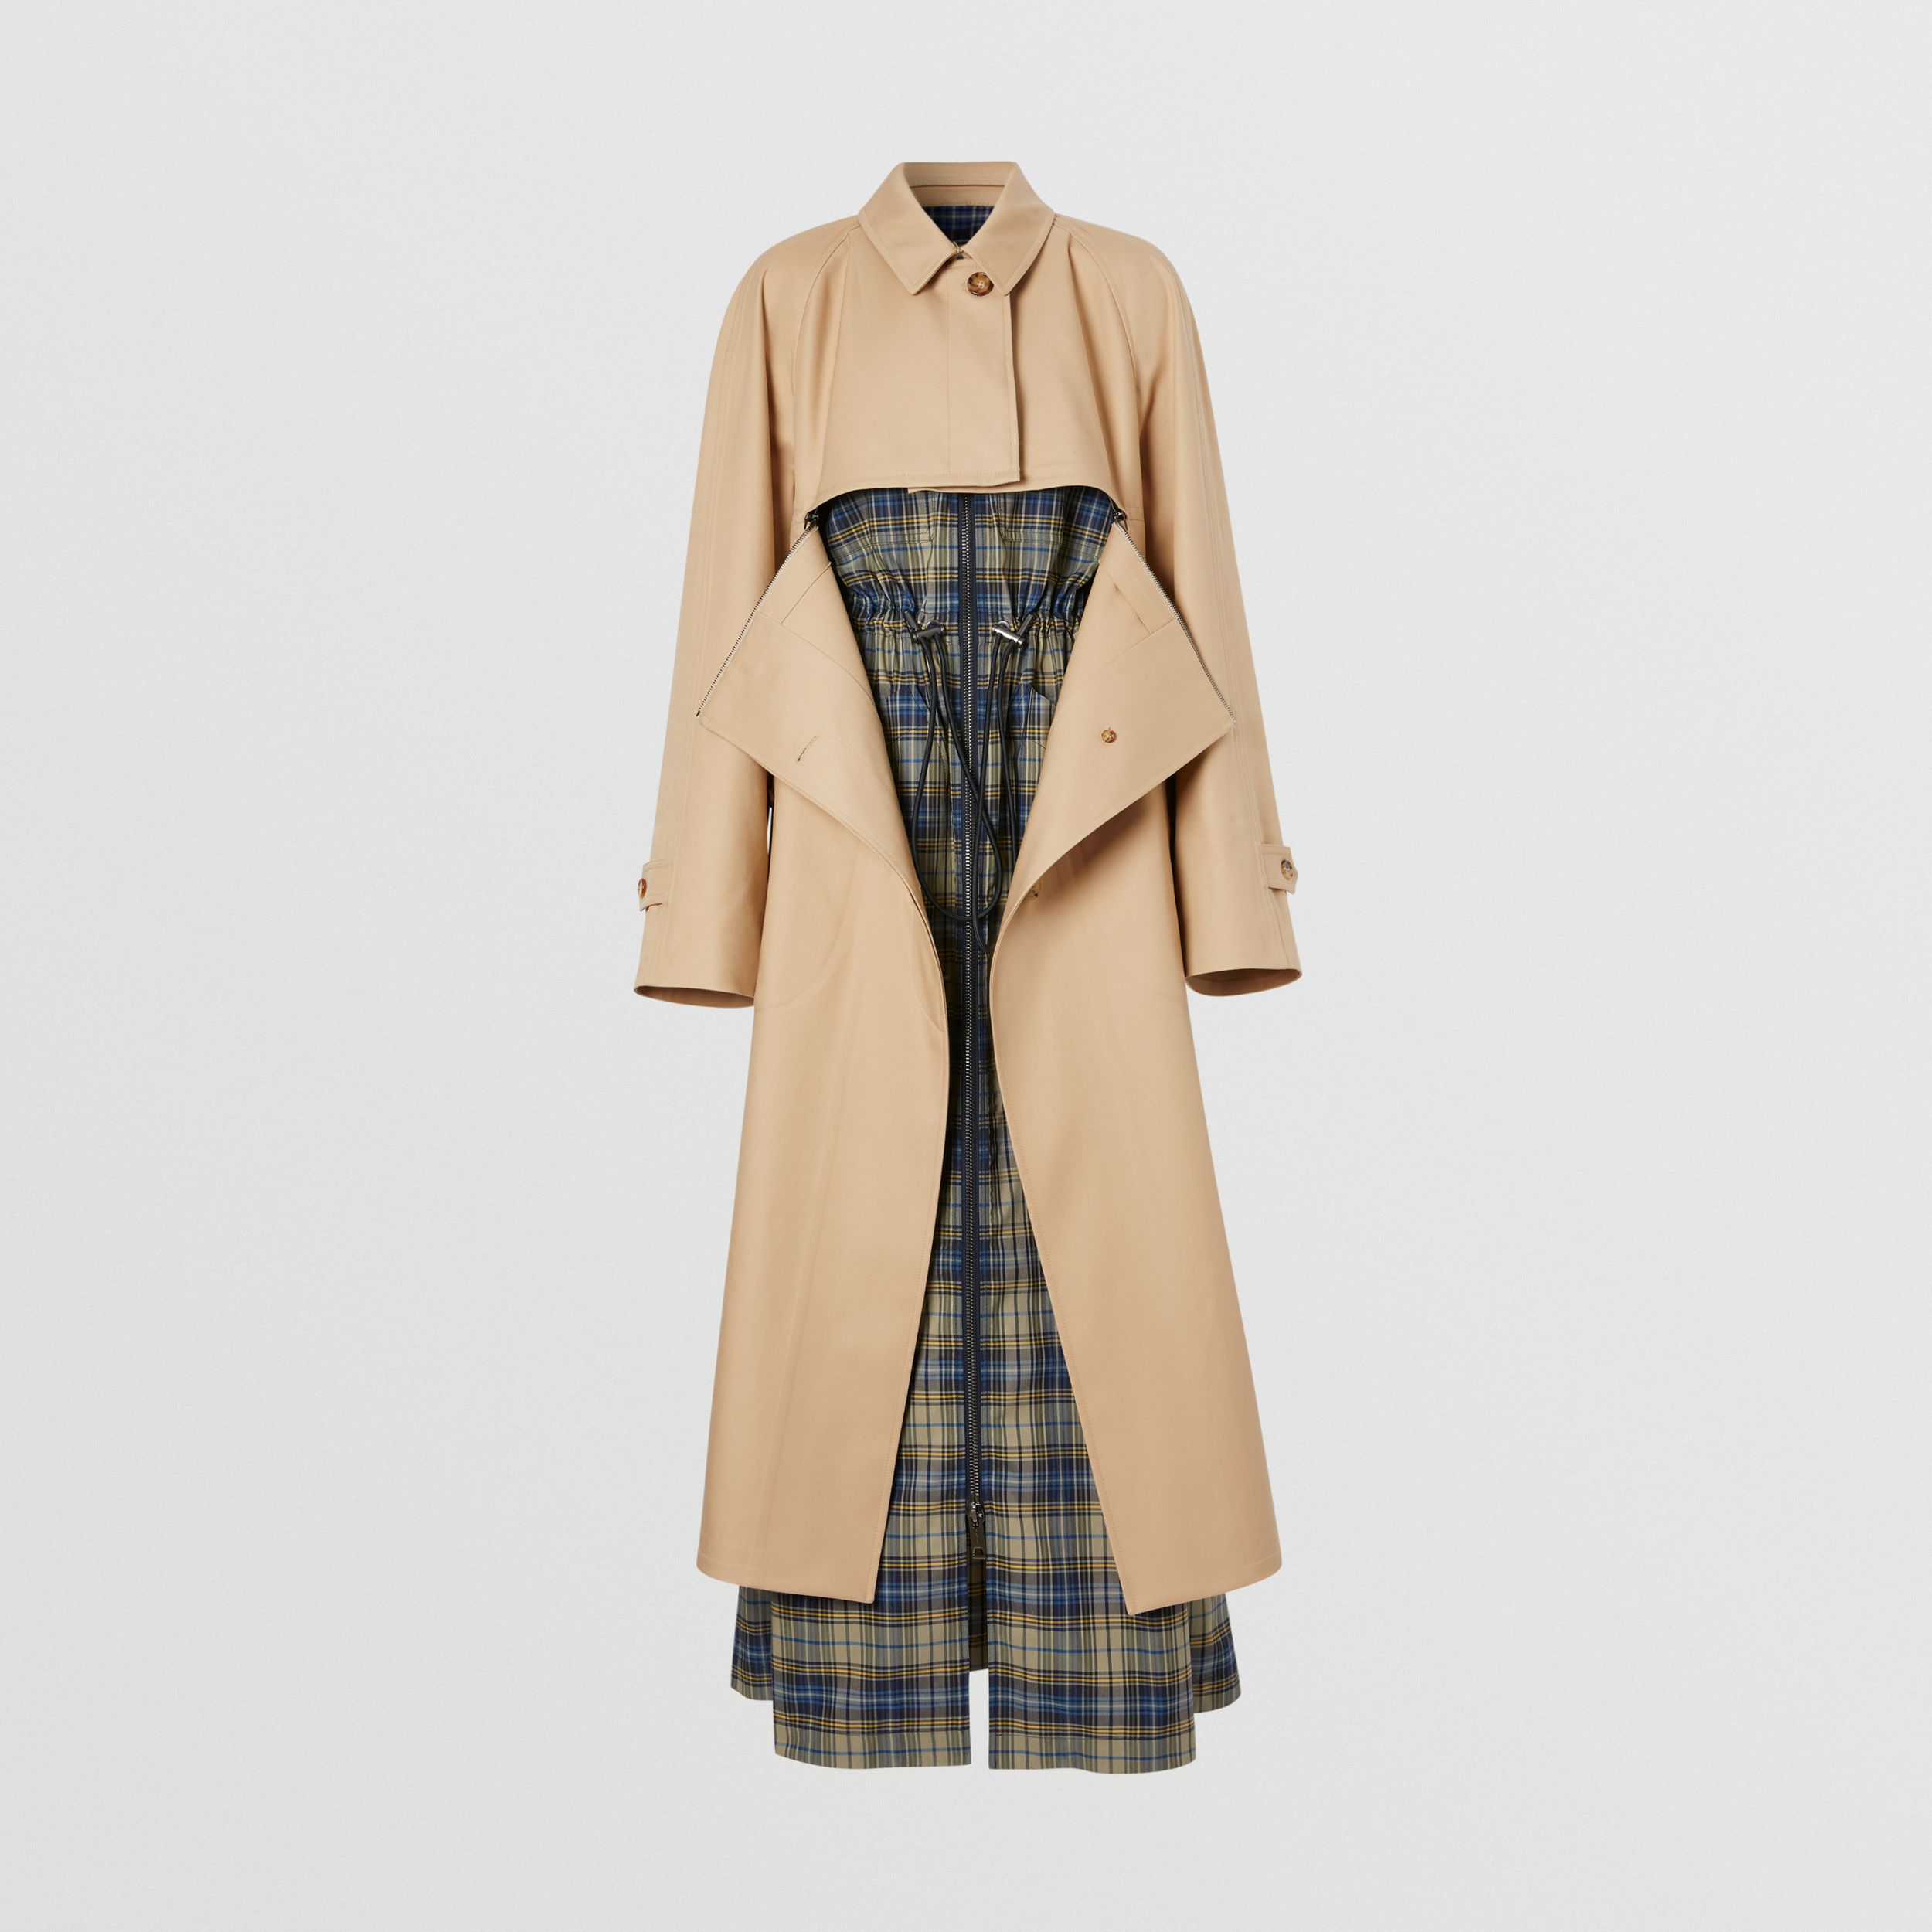 Cotton Gabardine Reconstructed Car Coat in Soft Fawn - Women | Burberry United Kingdom - 4